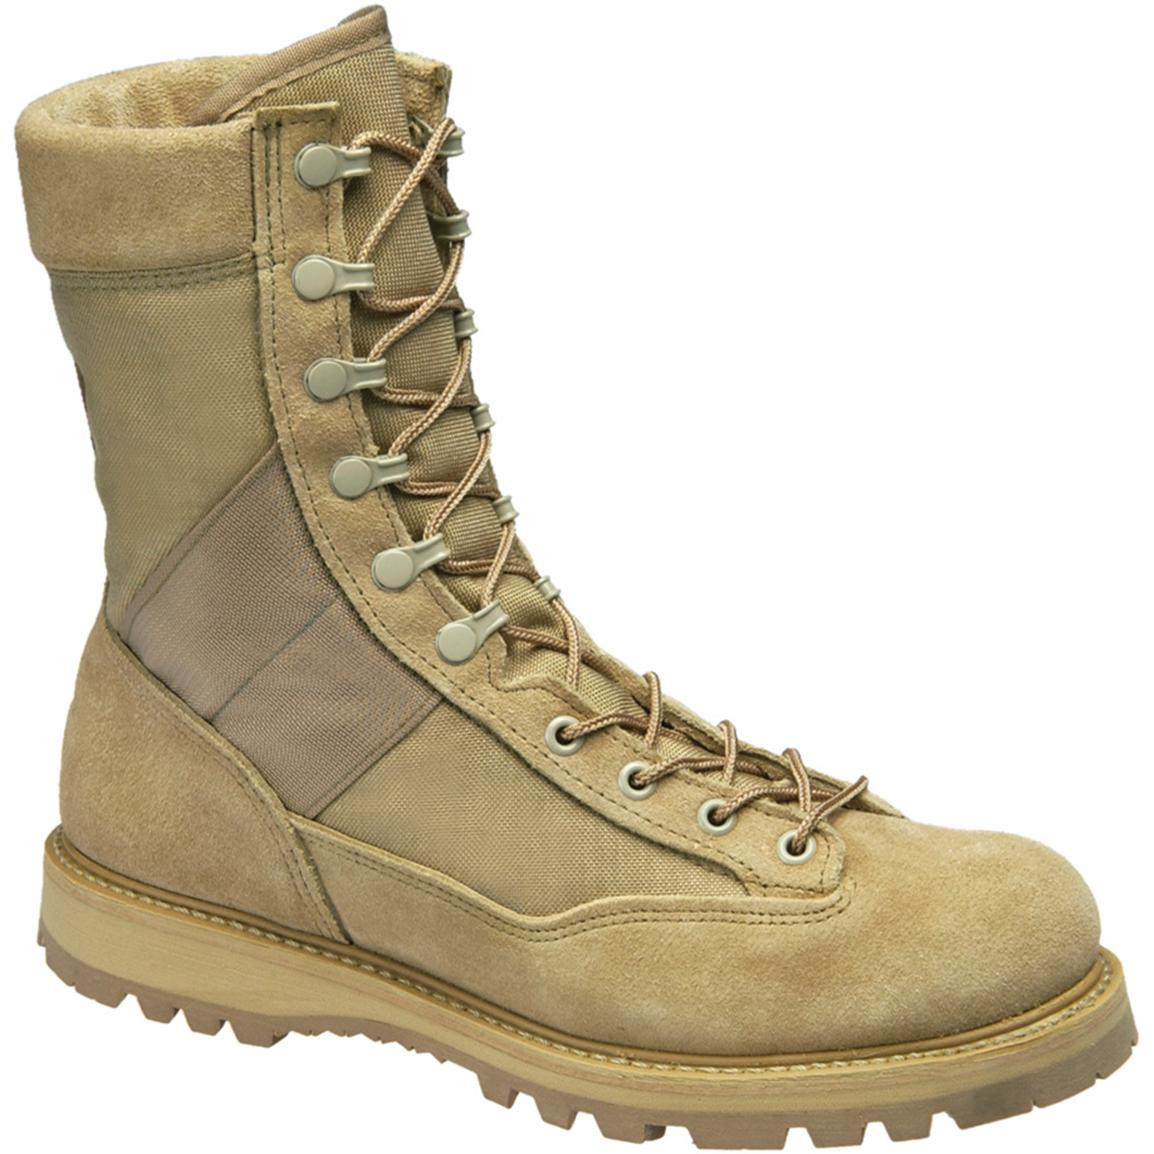 Desert Combat Boots w6W4nce9